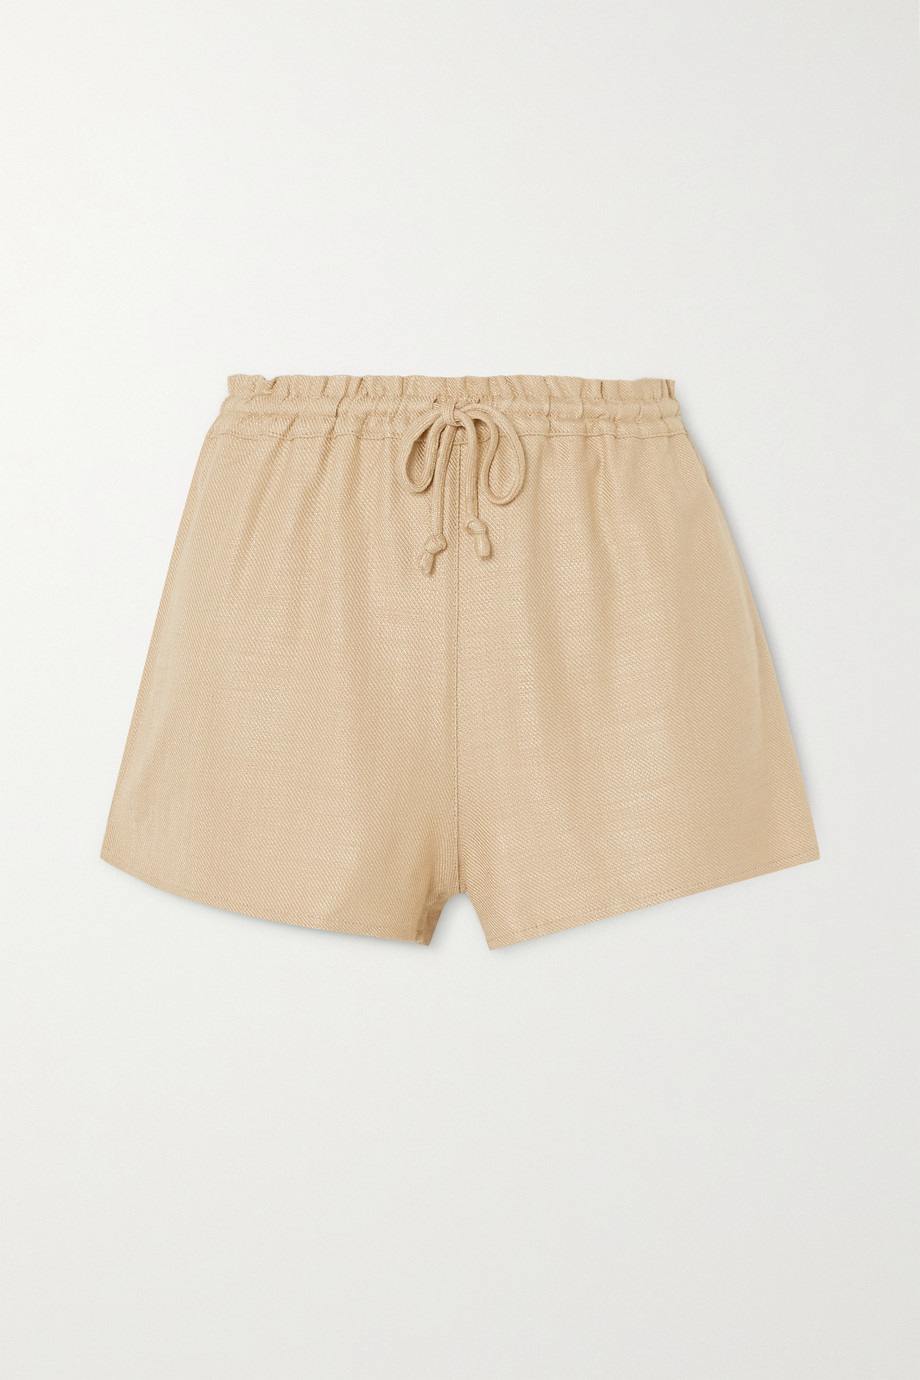 Cult Gaia Sissi knitted shorts